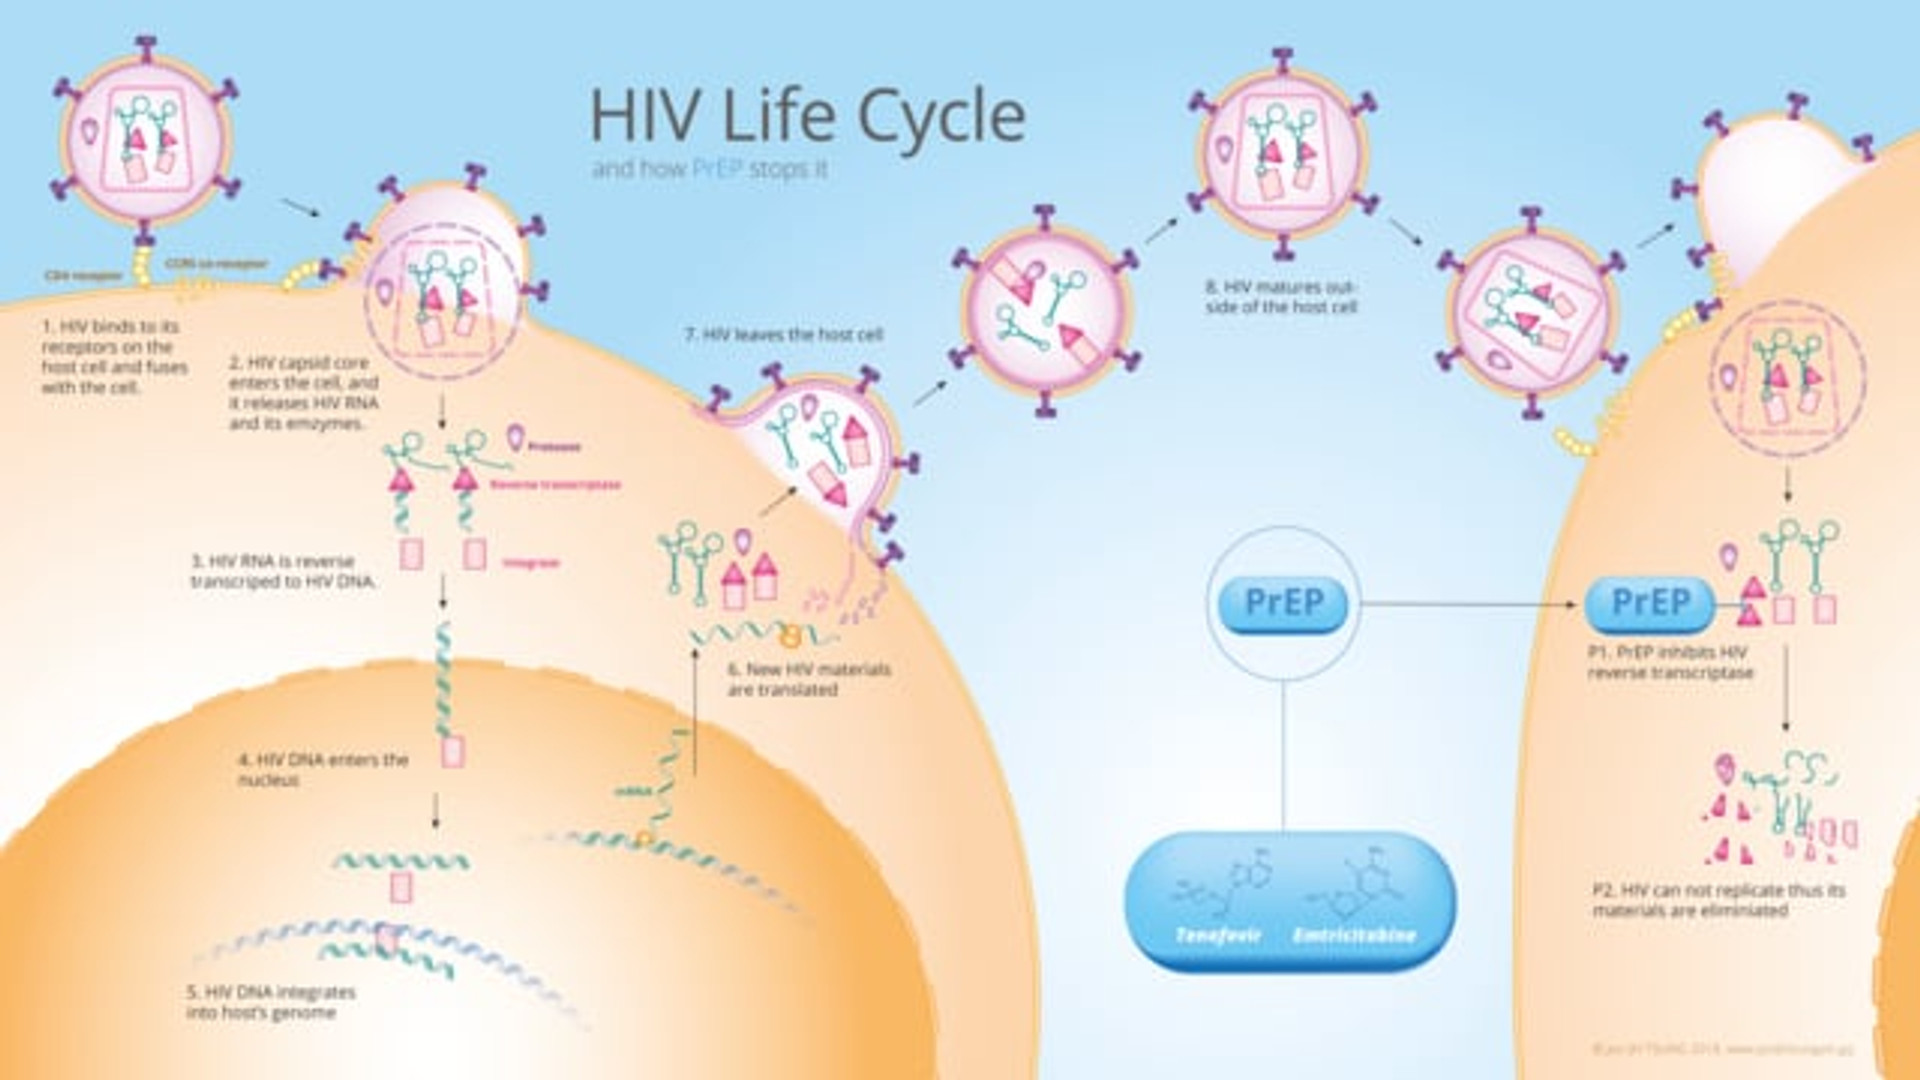 Animation: HIV life cycle and how PrEP Stops It